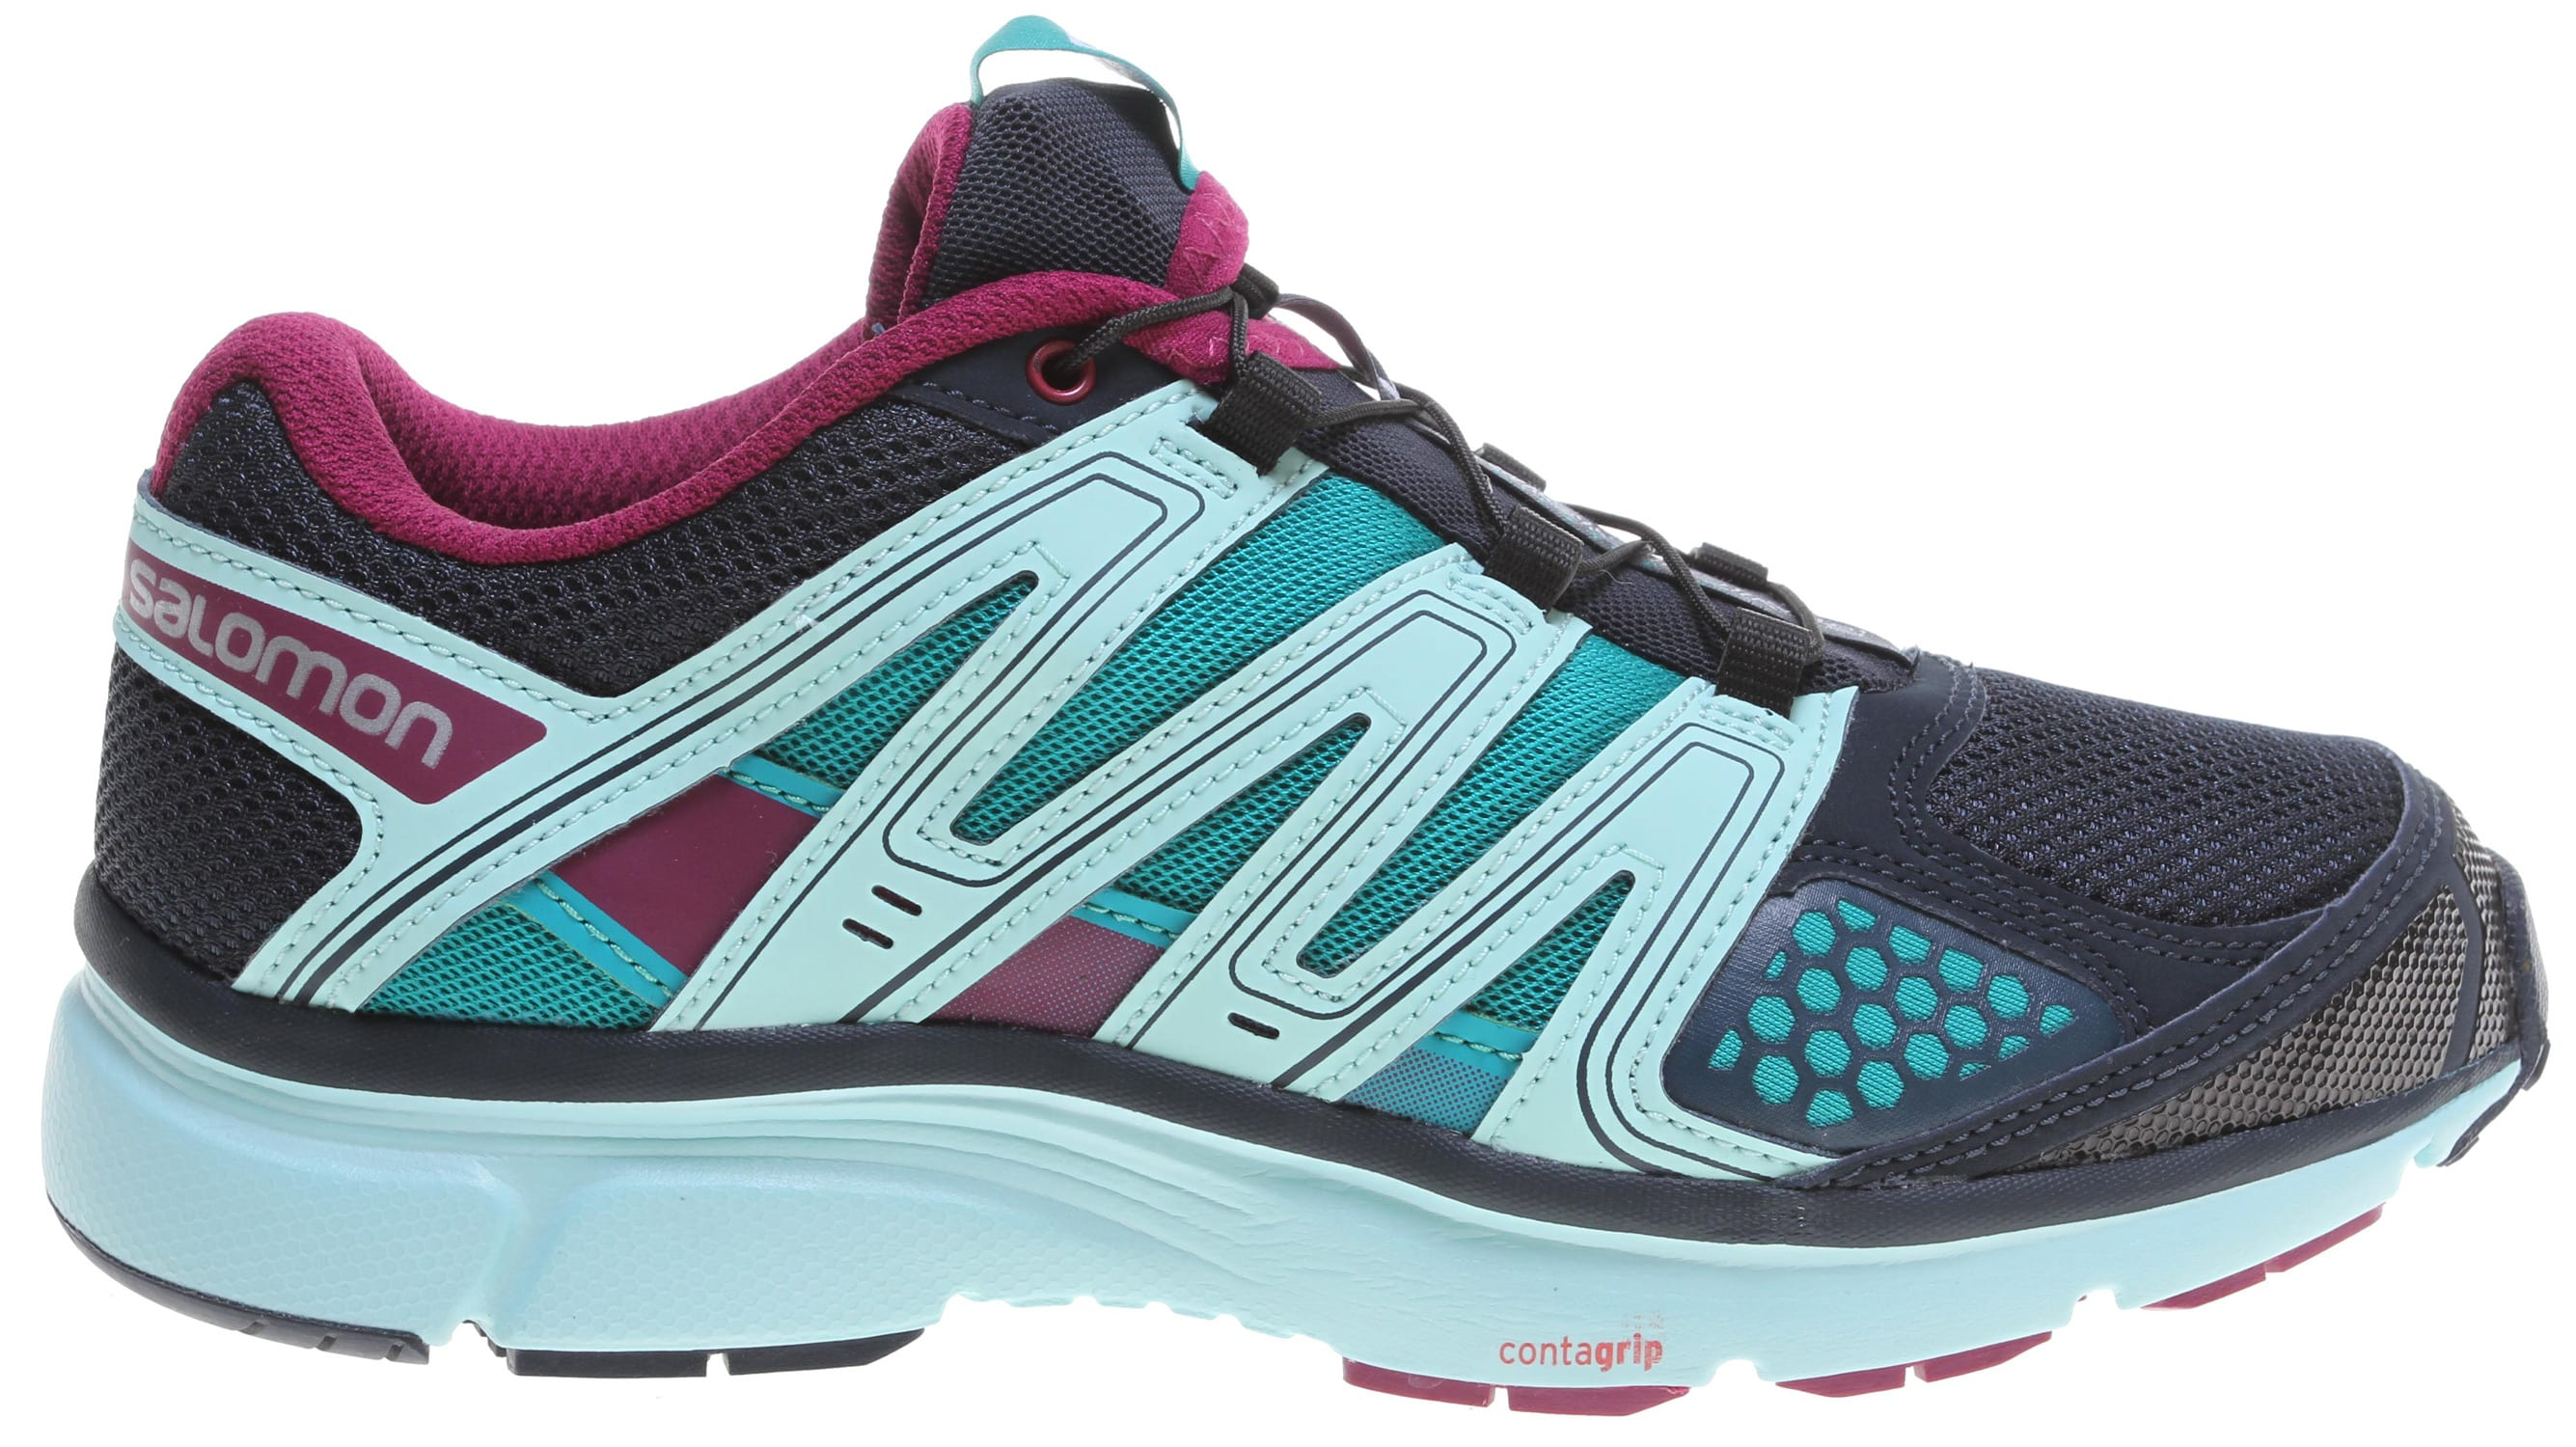 Salomon X-Mission 2 Trail Running Shoes